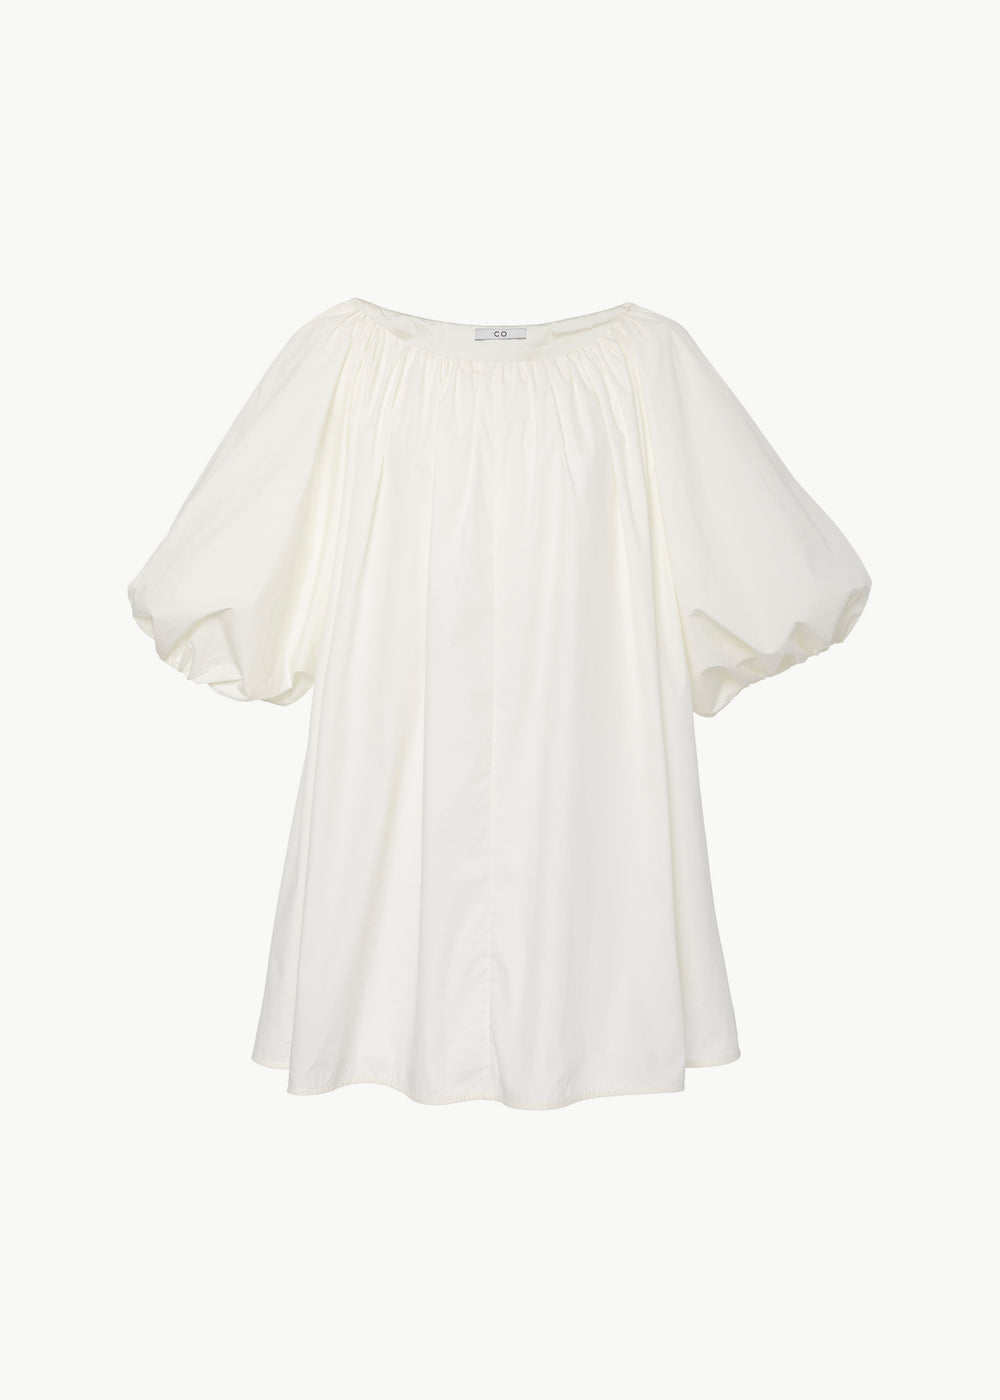 Ruched Top in Cotton - White - CO